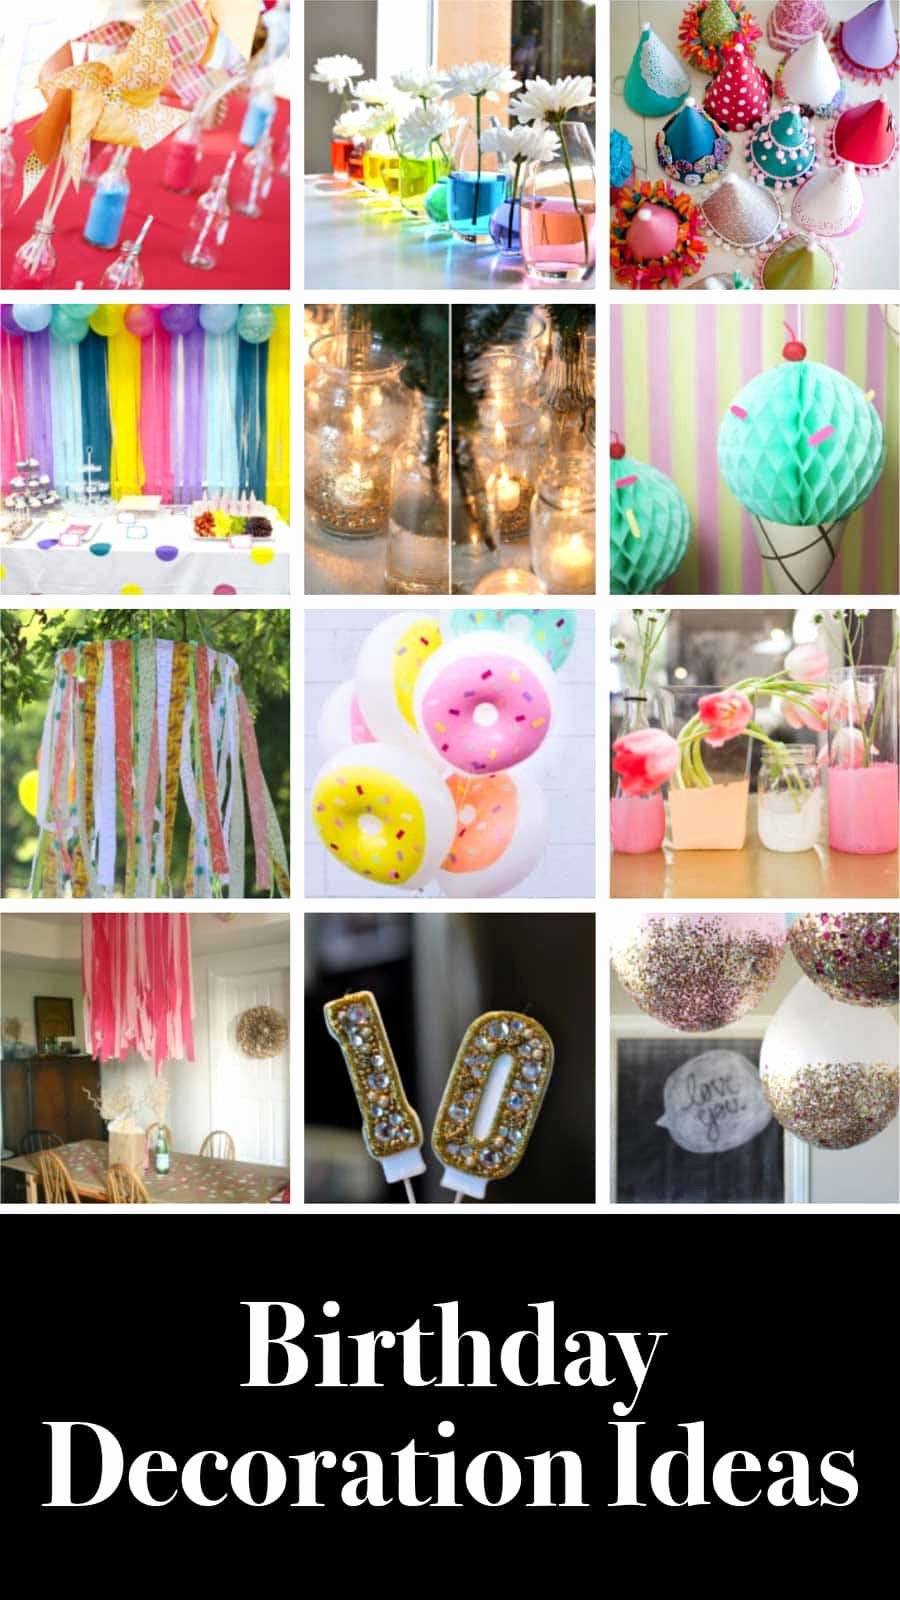 Simple Birthday Decoration Ideas for Adults Unique 12 Easy Diy Birthday Decoration Ideas 2020